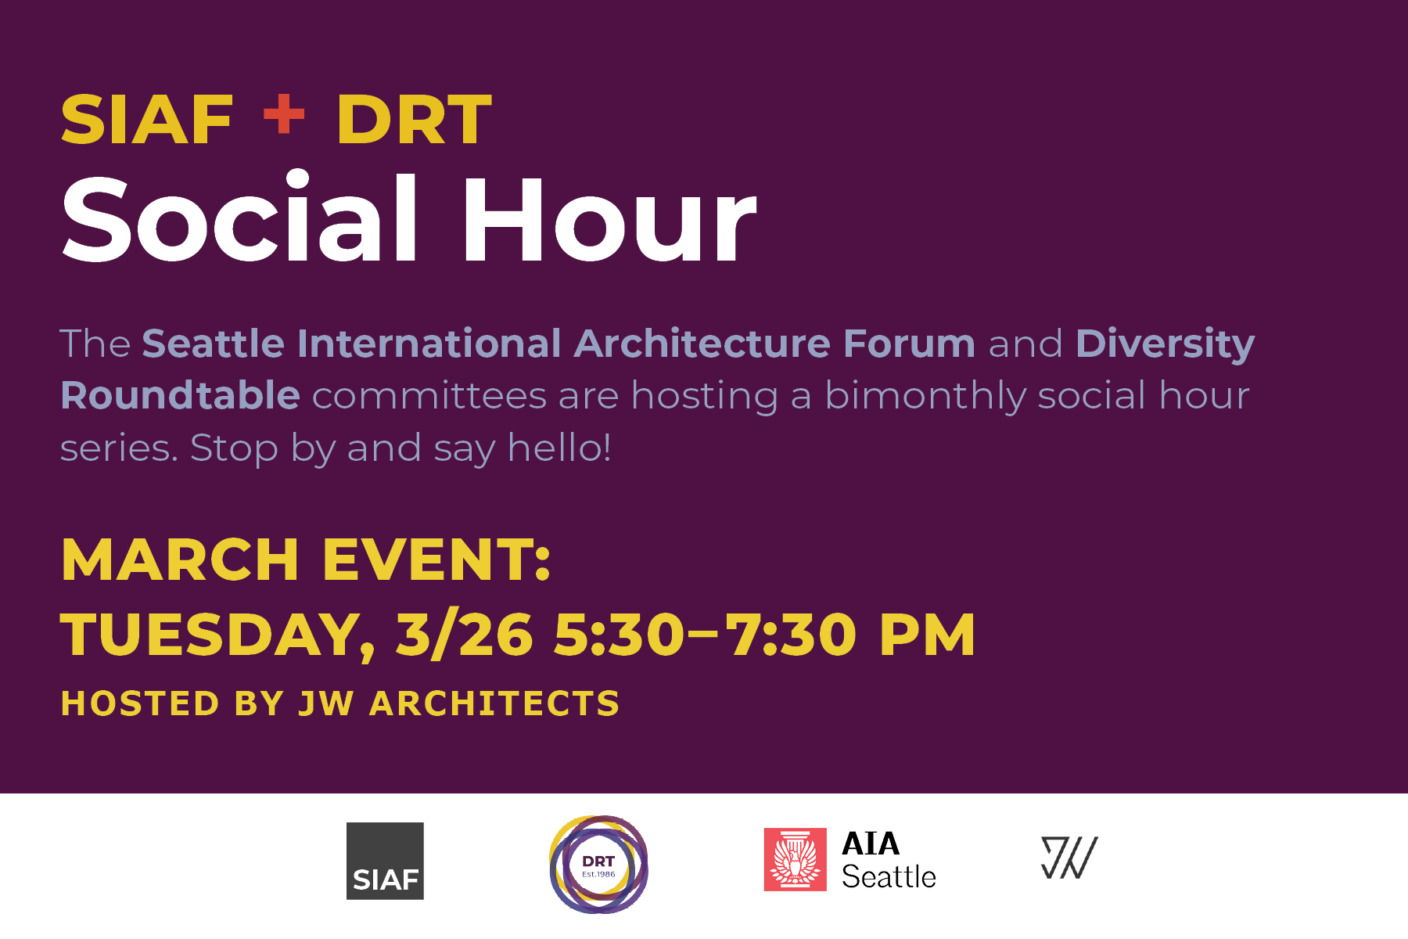 The AIA Seattle Social Hour Series is a bimonthly gathering presented by the Seattle International Architecture Forum and Diversity Roundtablecommittees to encourage connections amongst diverse practitioners withinthe Seattle design community.